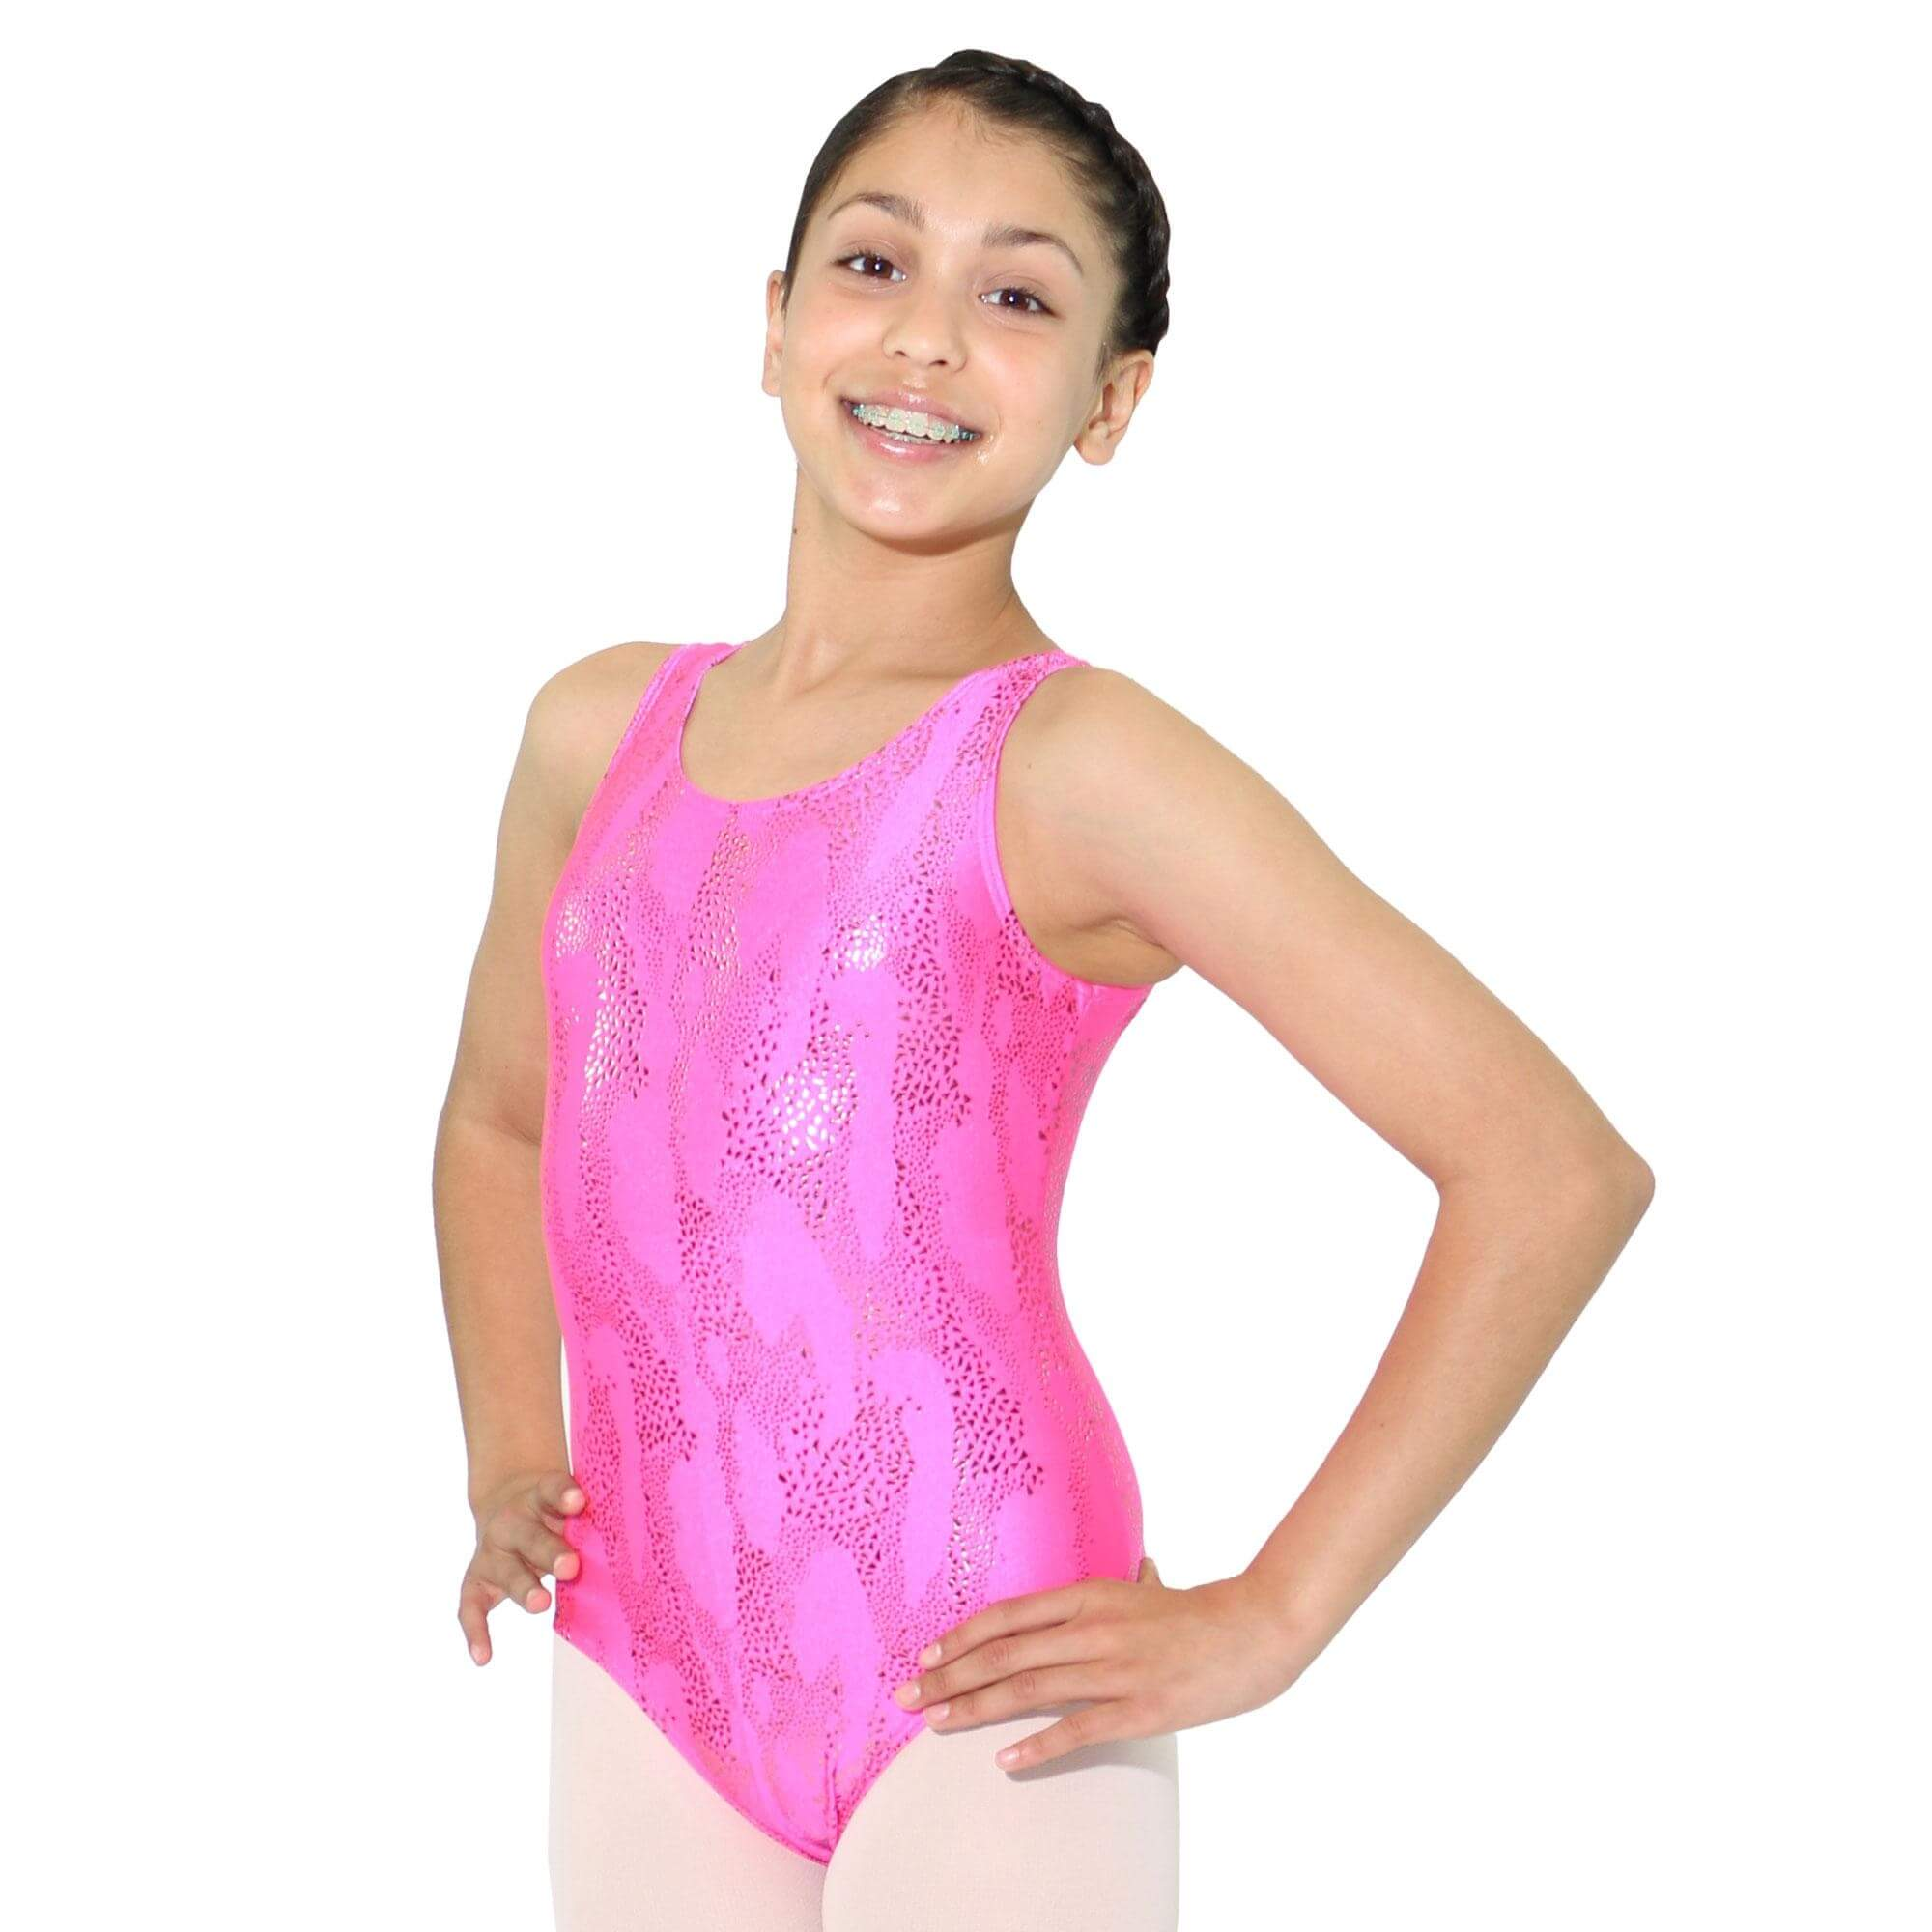 56030f199531 Reflectionz  leotards for girls